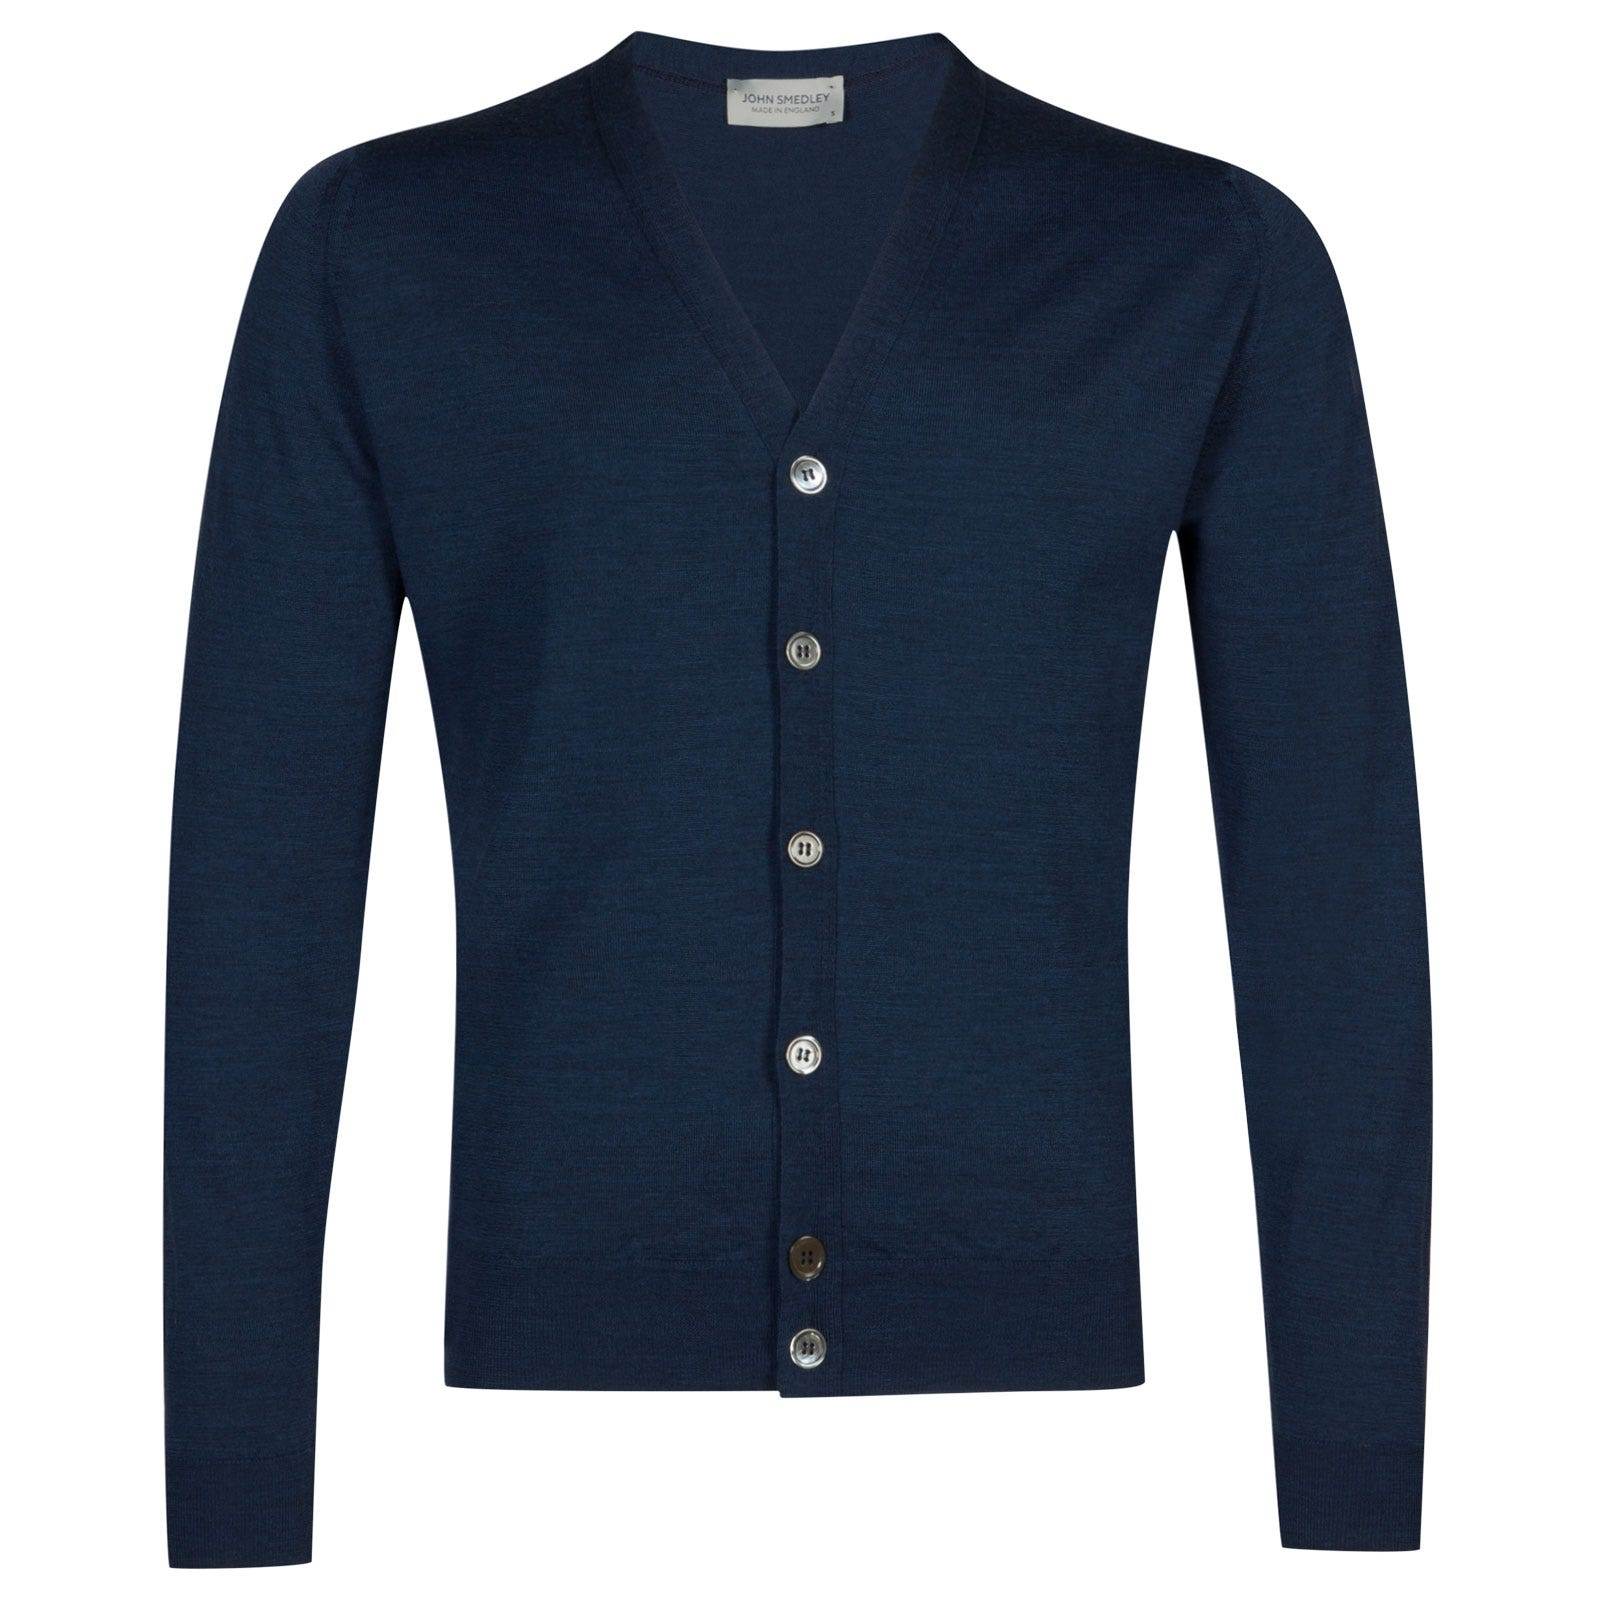 John Smedley naples Merino Wool Cardigan in Midnight-S